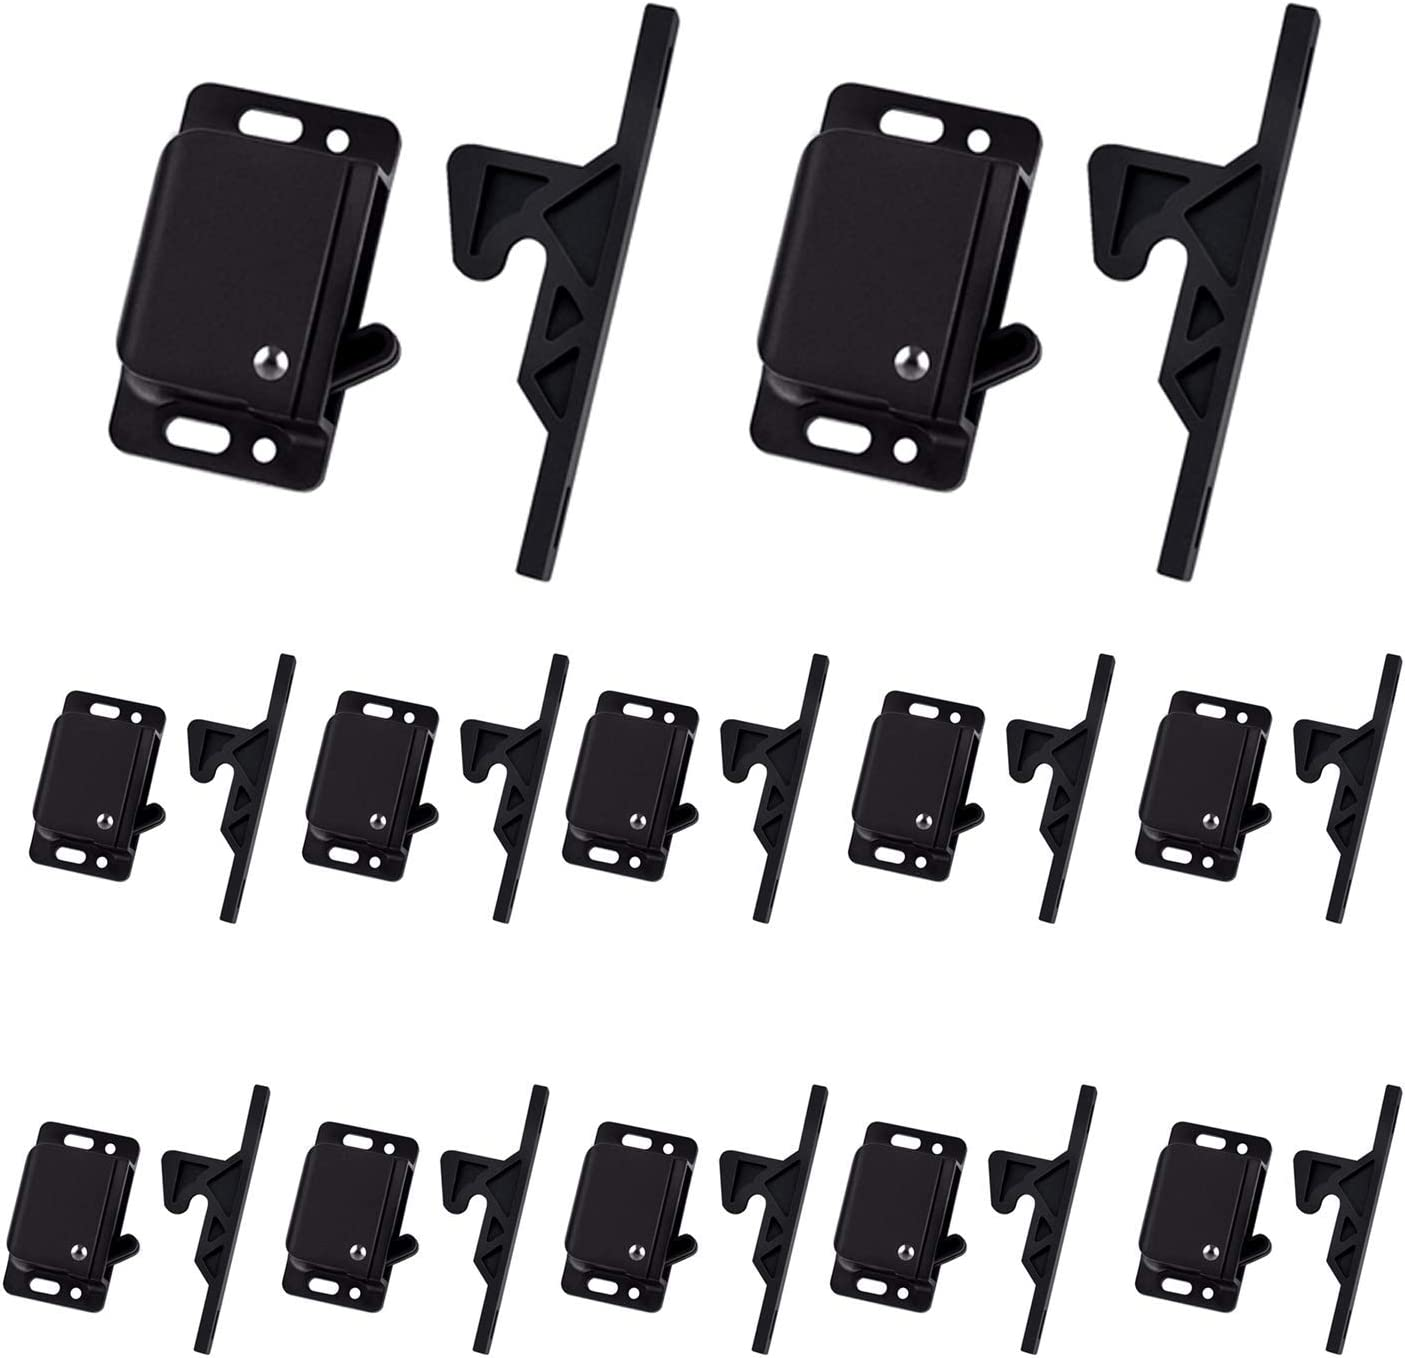 12 Pack Cabinet Door Latch/RV Drawer Latches, 8 Pull Force Latch, Holder for Home/RV Cabinet with Mounting Screws, Perfect for RV, Camper, Motorhome, Trailor, OEM Replacement